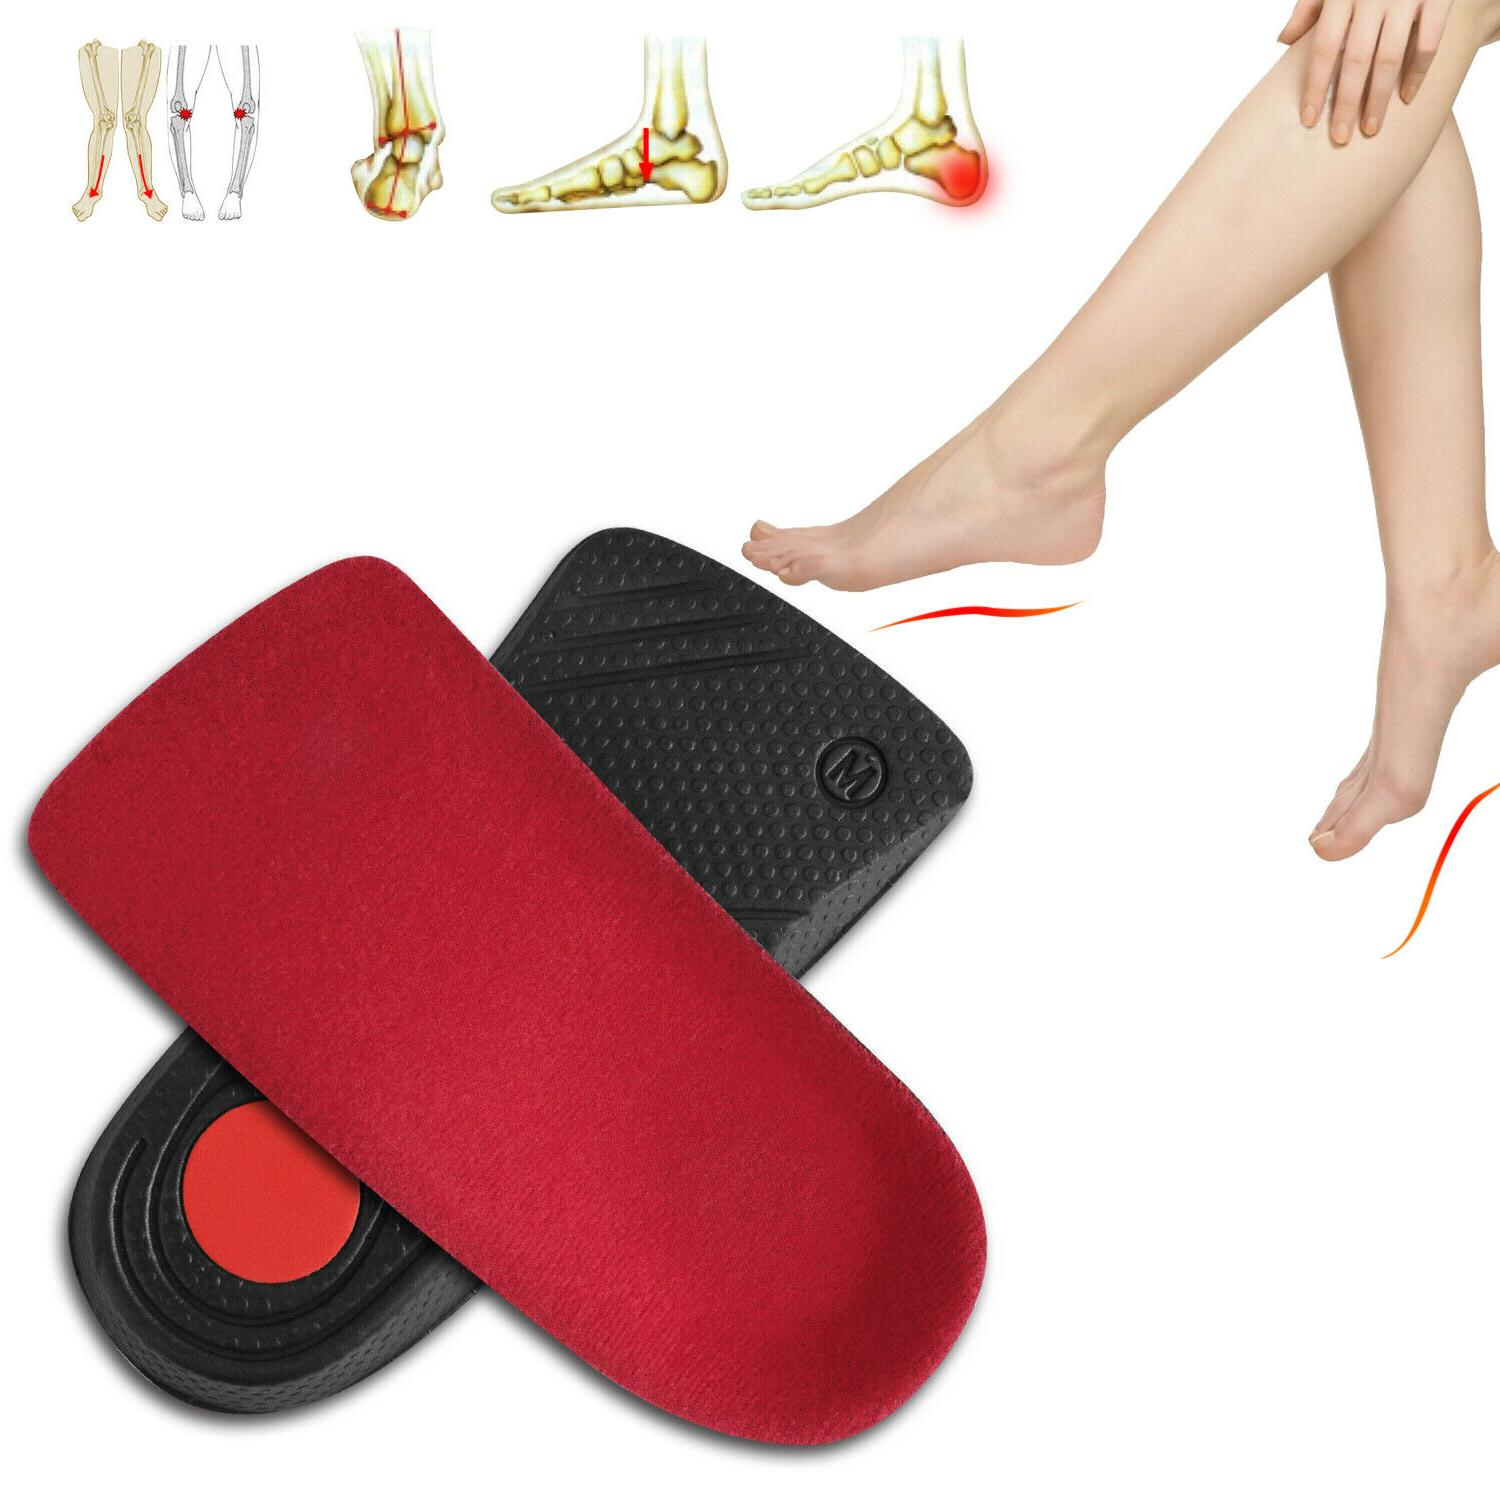 3/4 High Arch Support Orthotic Shoe Flat Fasciitis